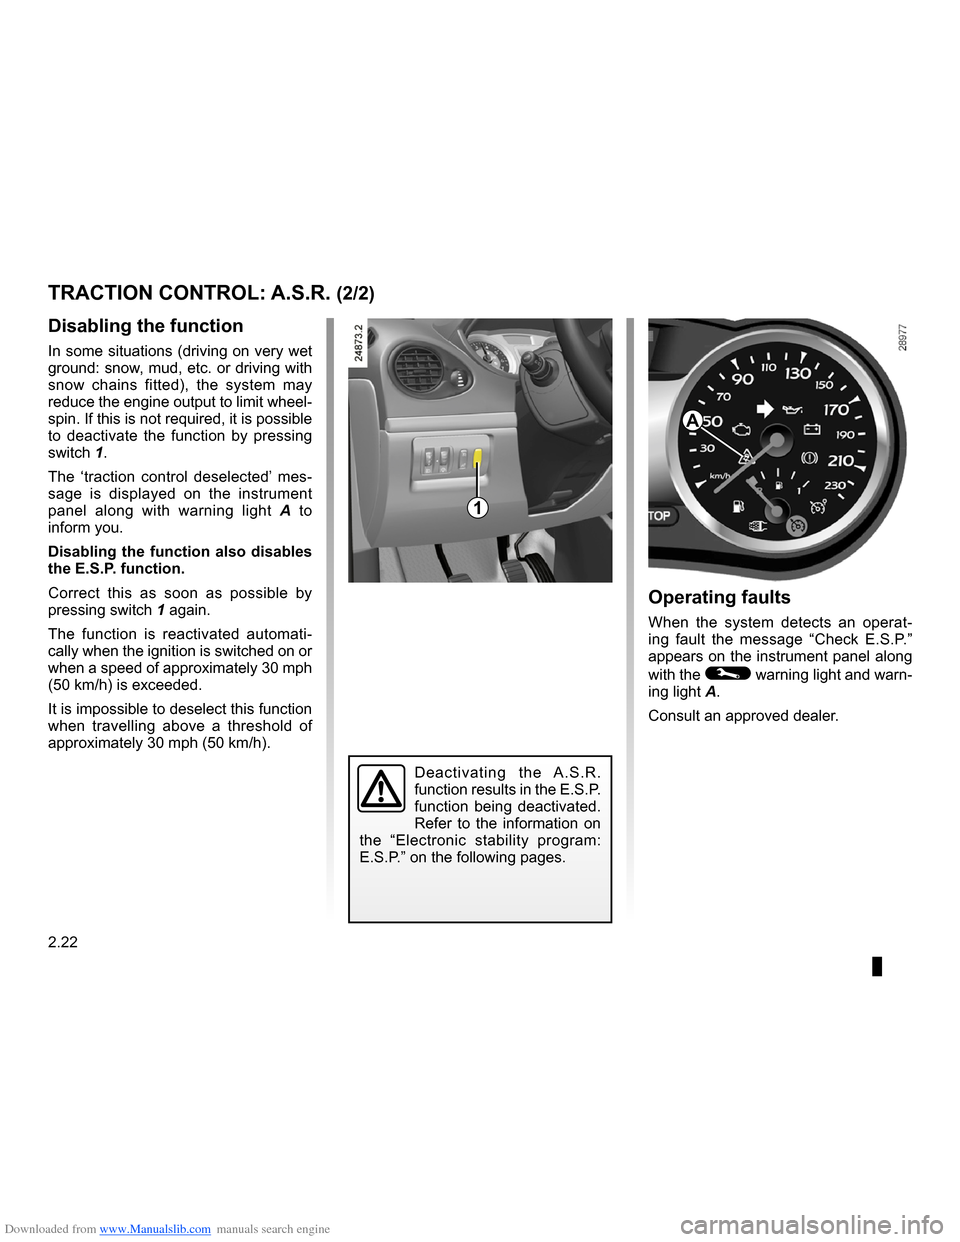 RENAULT CLIO 2009 X85 / 3.G Owners Manual, Page 114